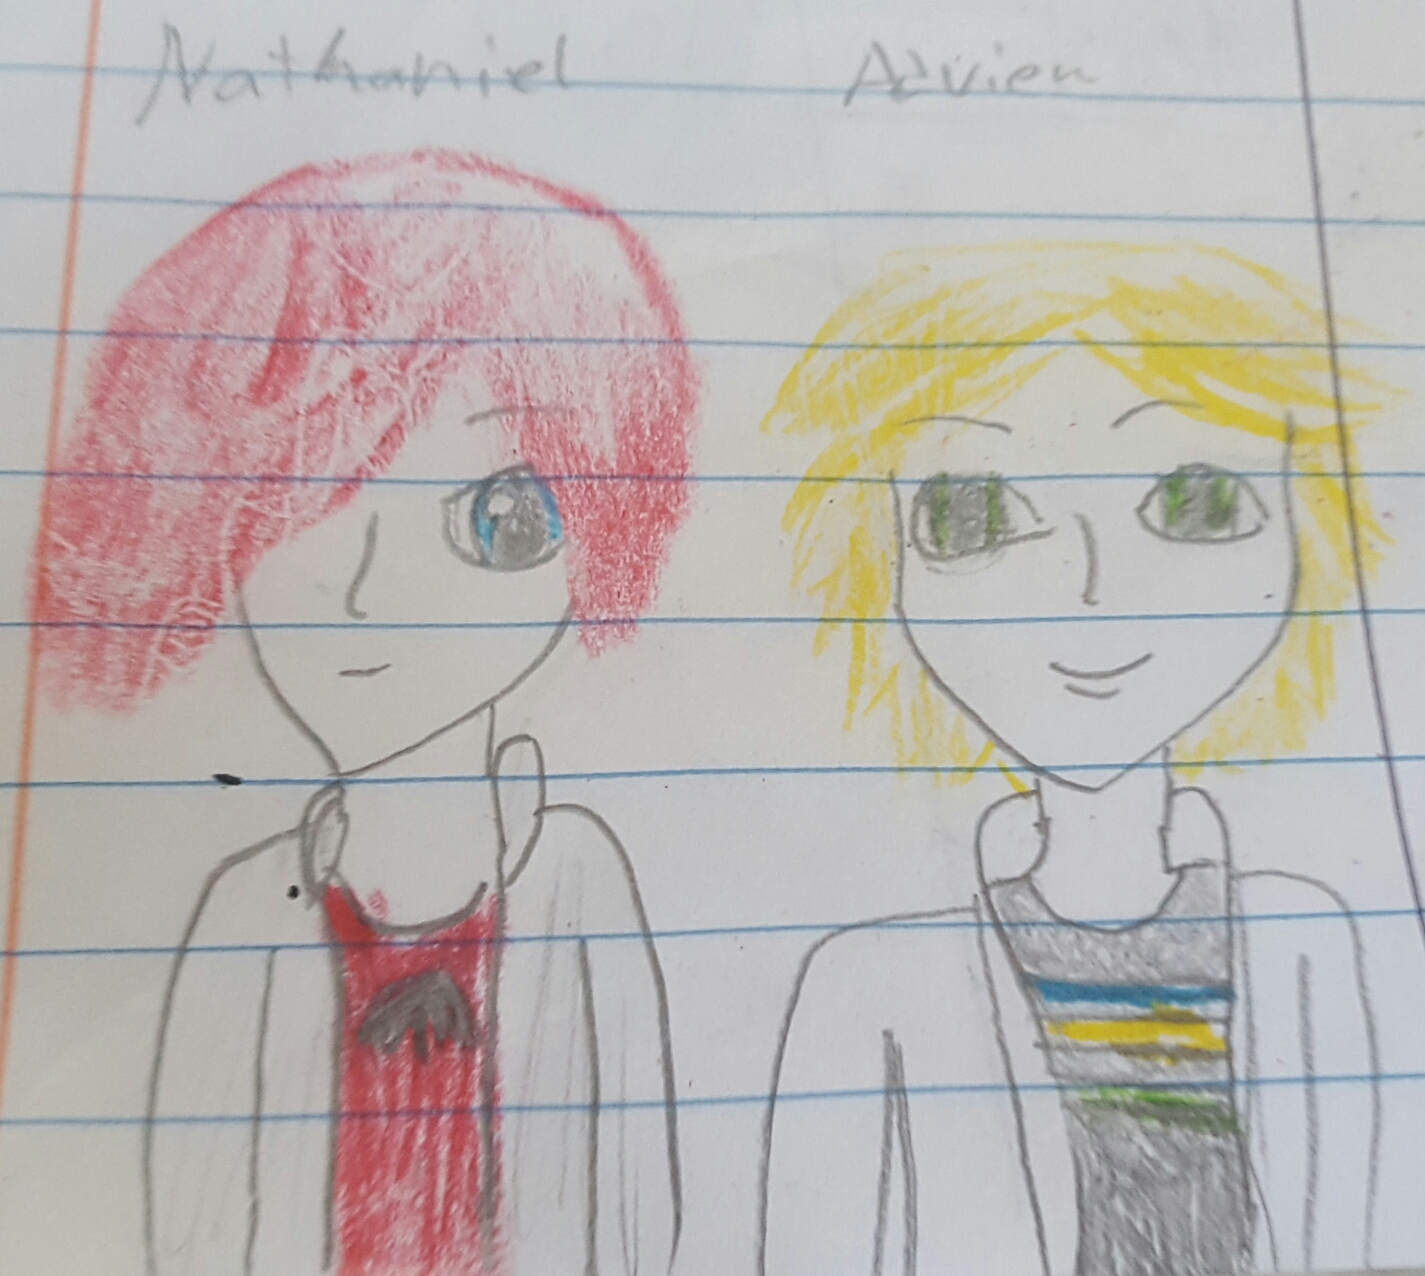 Young ❤Nathaboo❤ and Adrien!